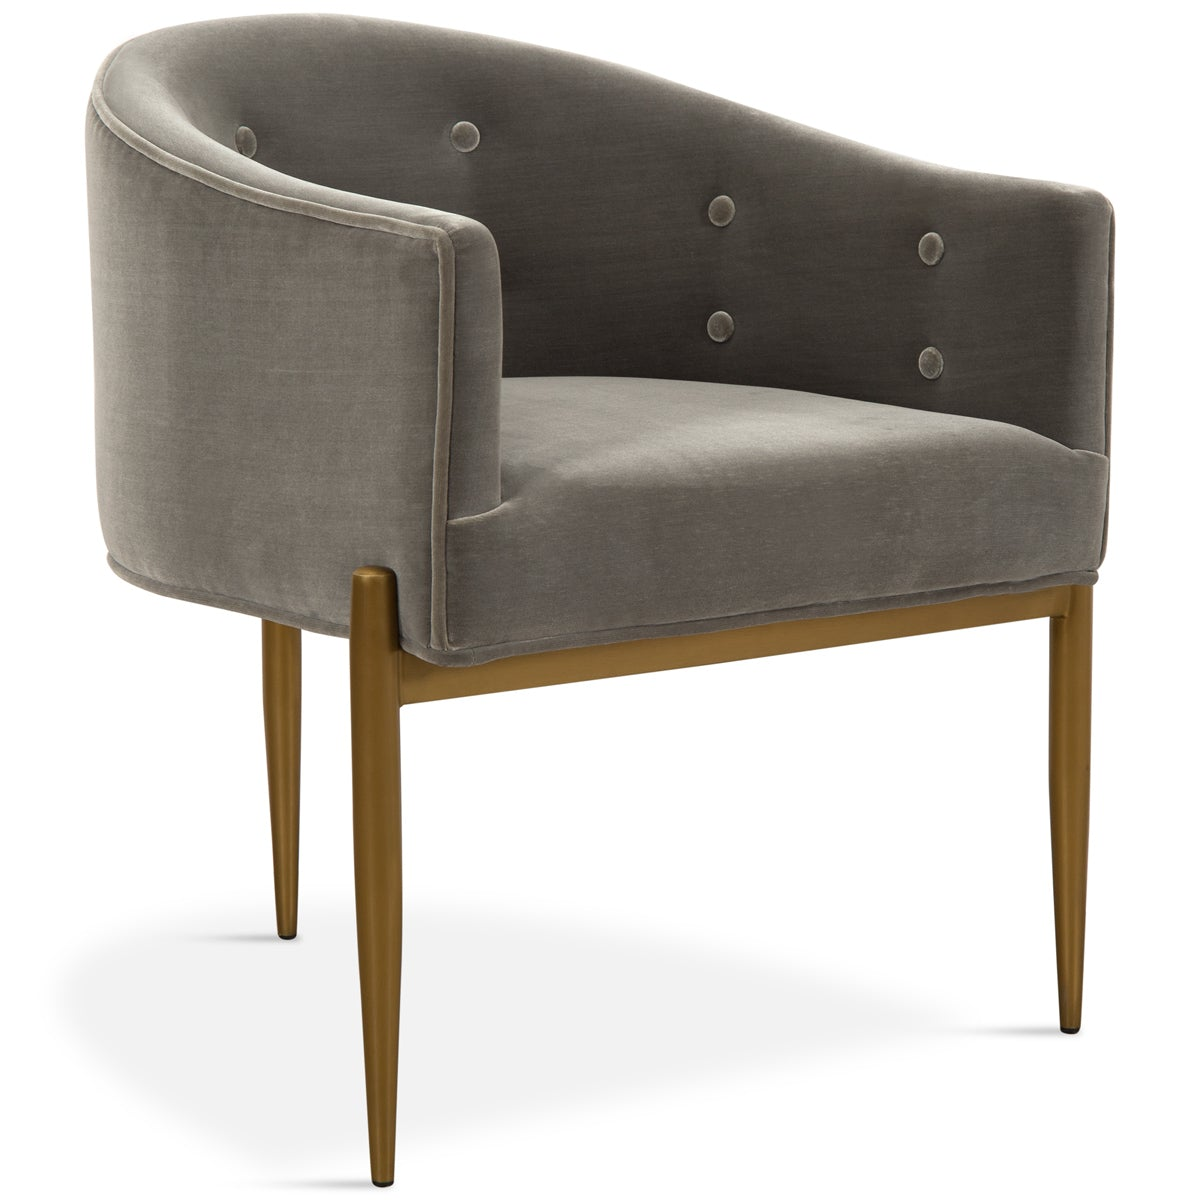 Art Deco Dining Chair in Brushed Brass - ModShop1.com